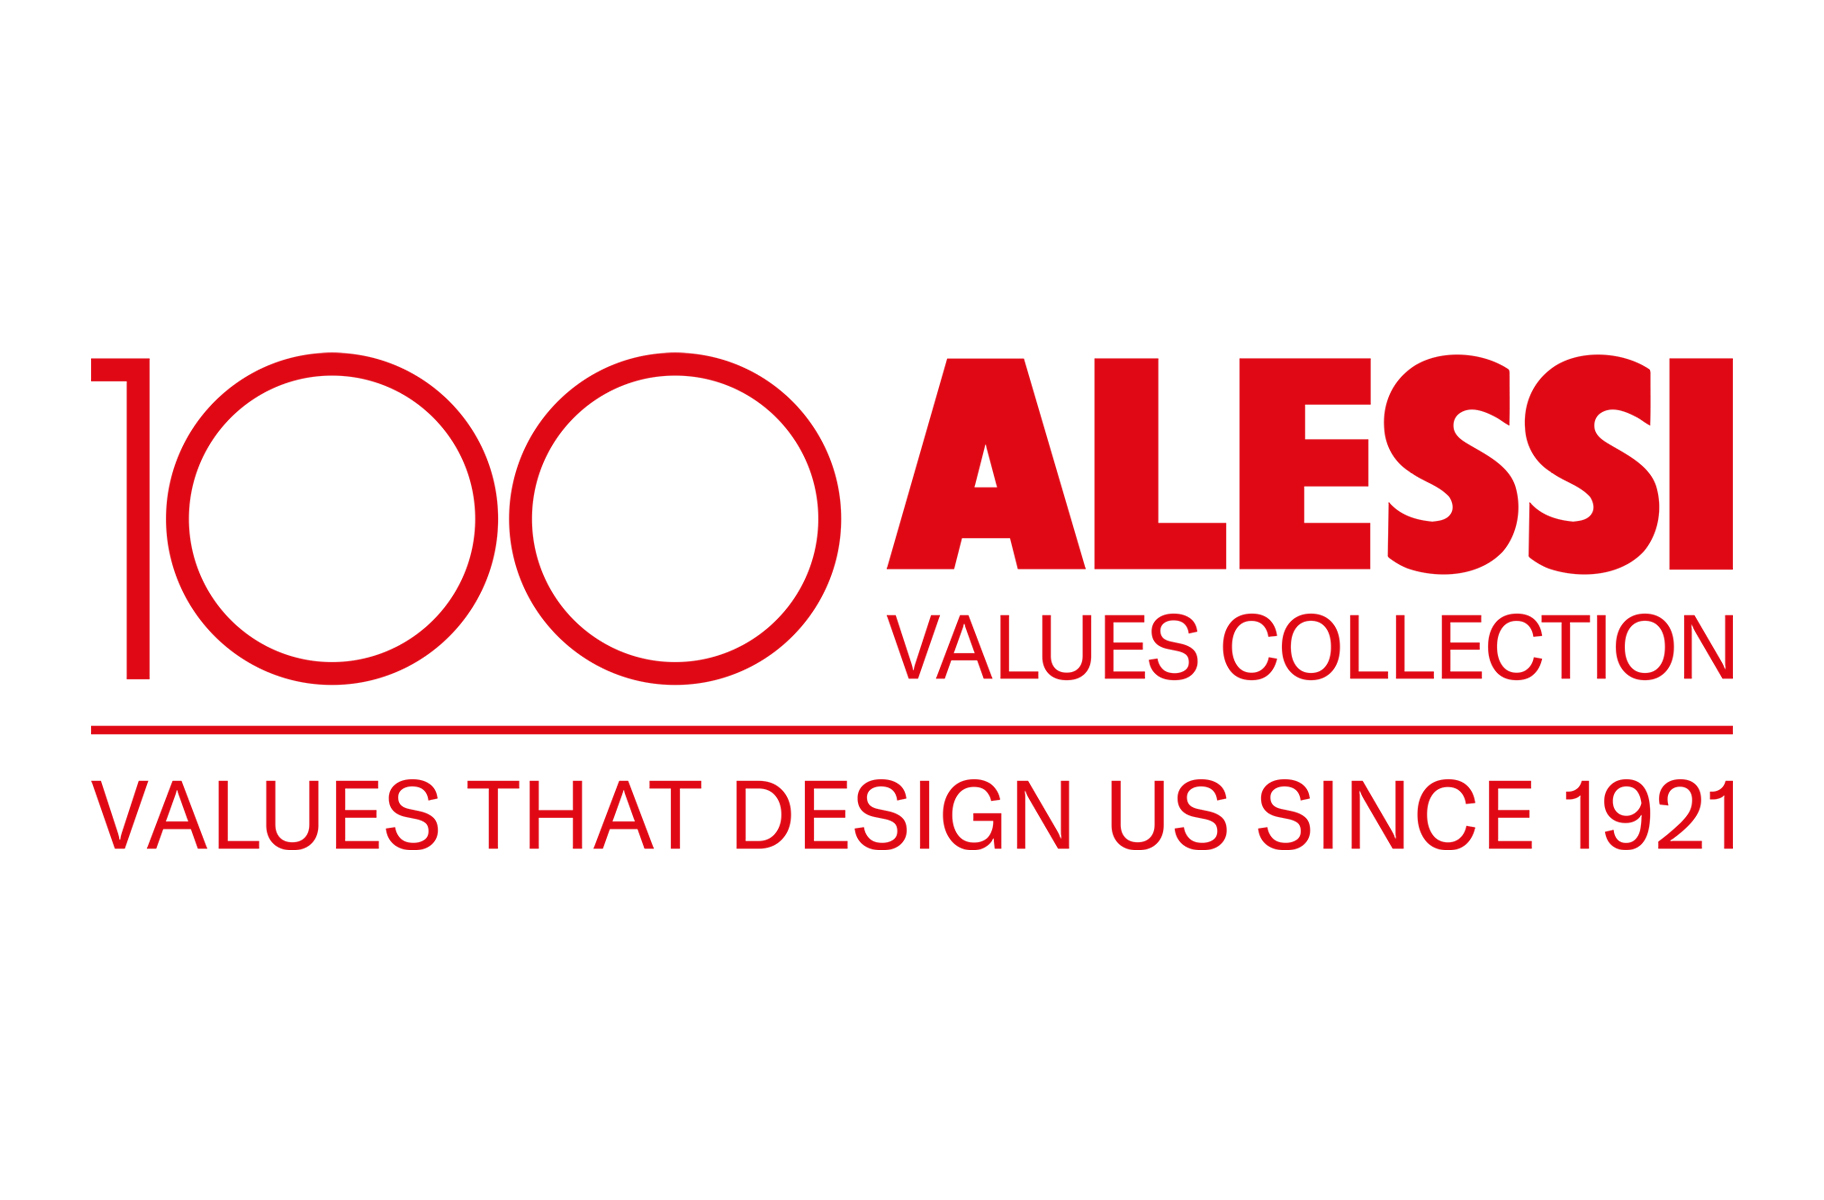 Alessi 100 jaar Values collection